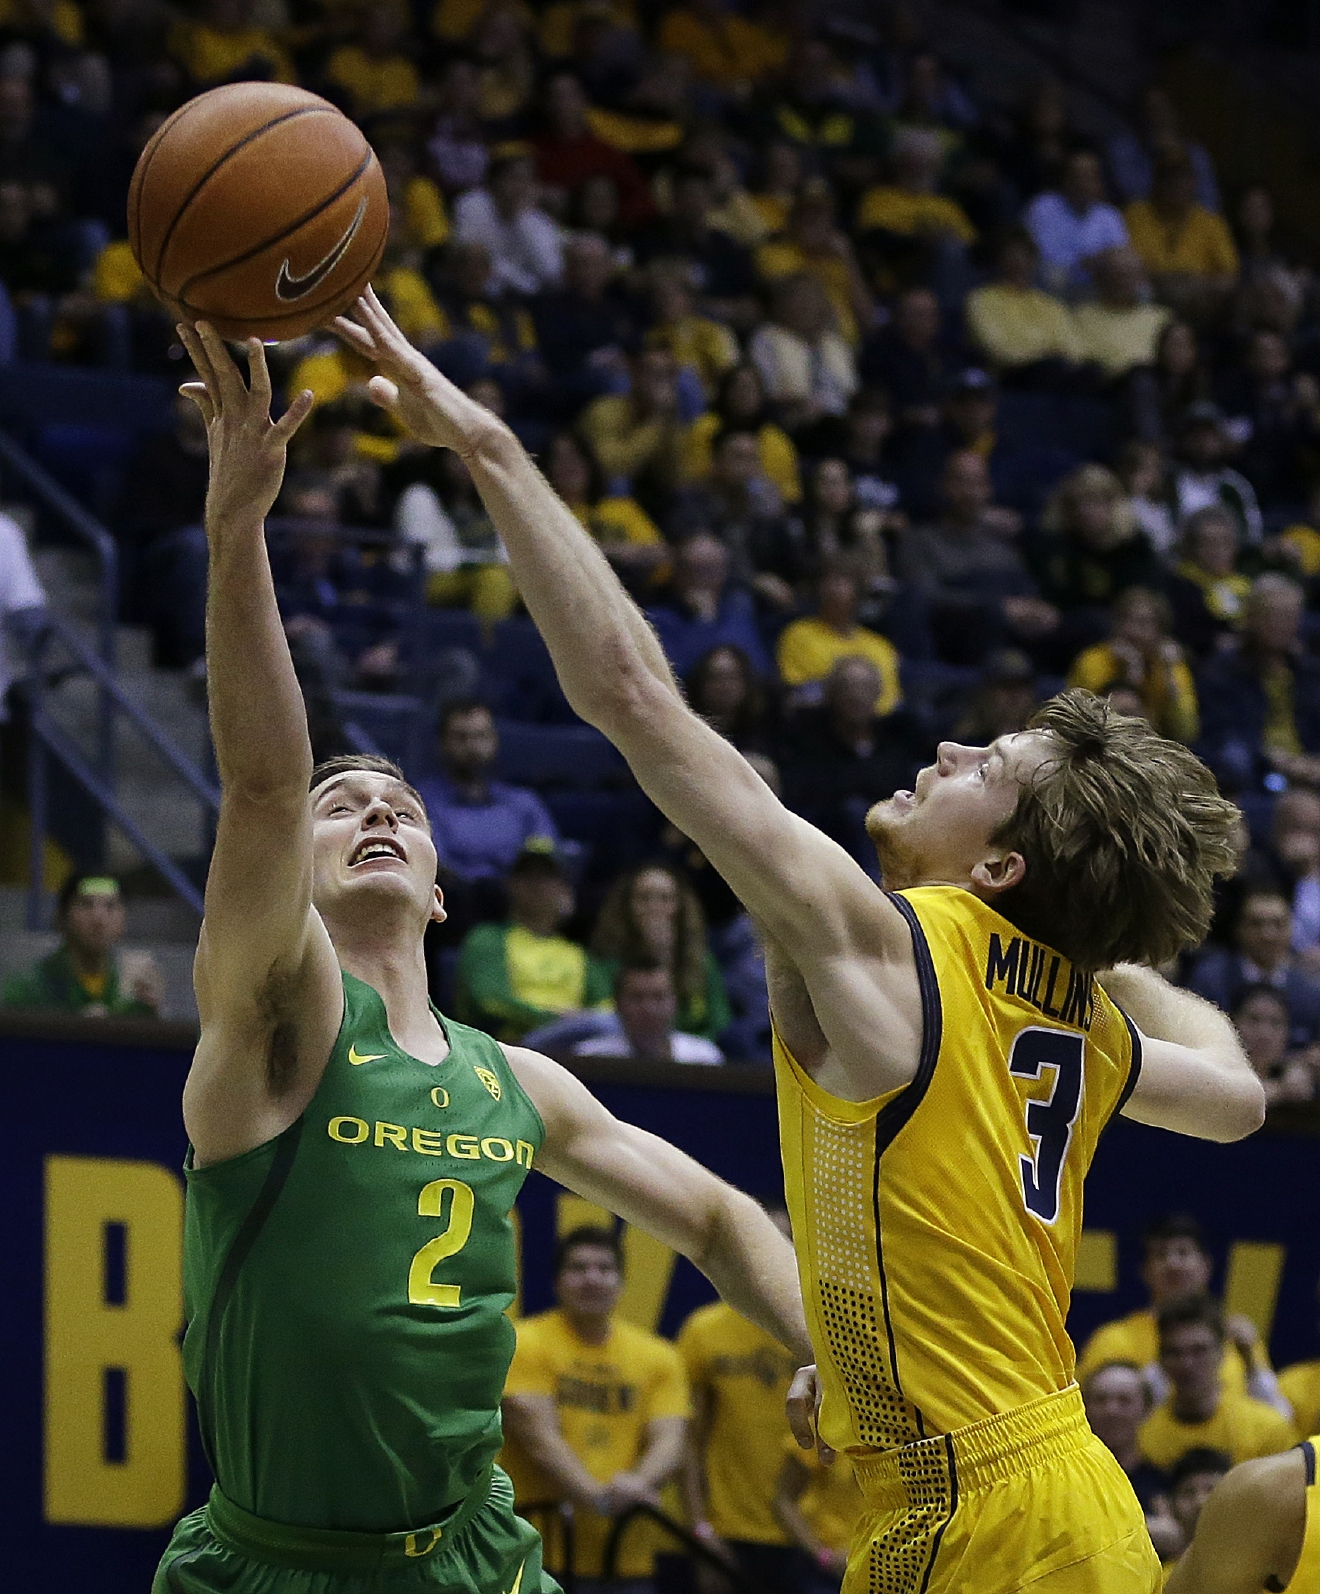 Oregon's Casey Benson, left, lays up a shot against California's Grant Mullins (3) in the first half of an NCAA college basketball game, Wednesday, Feb. 22, 2017, in Berkeley, Calif. (AP Photo/Ben Margot)